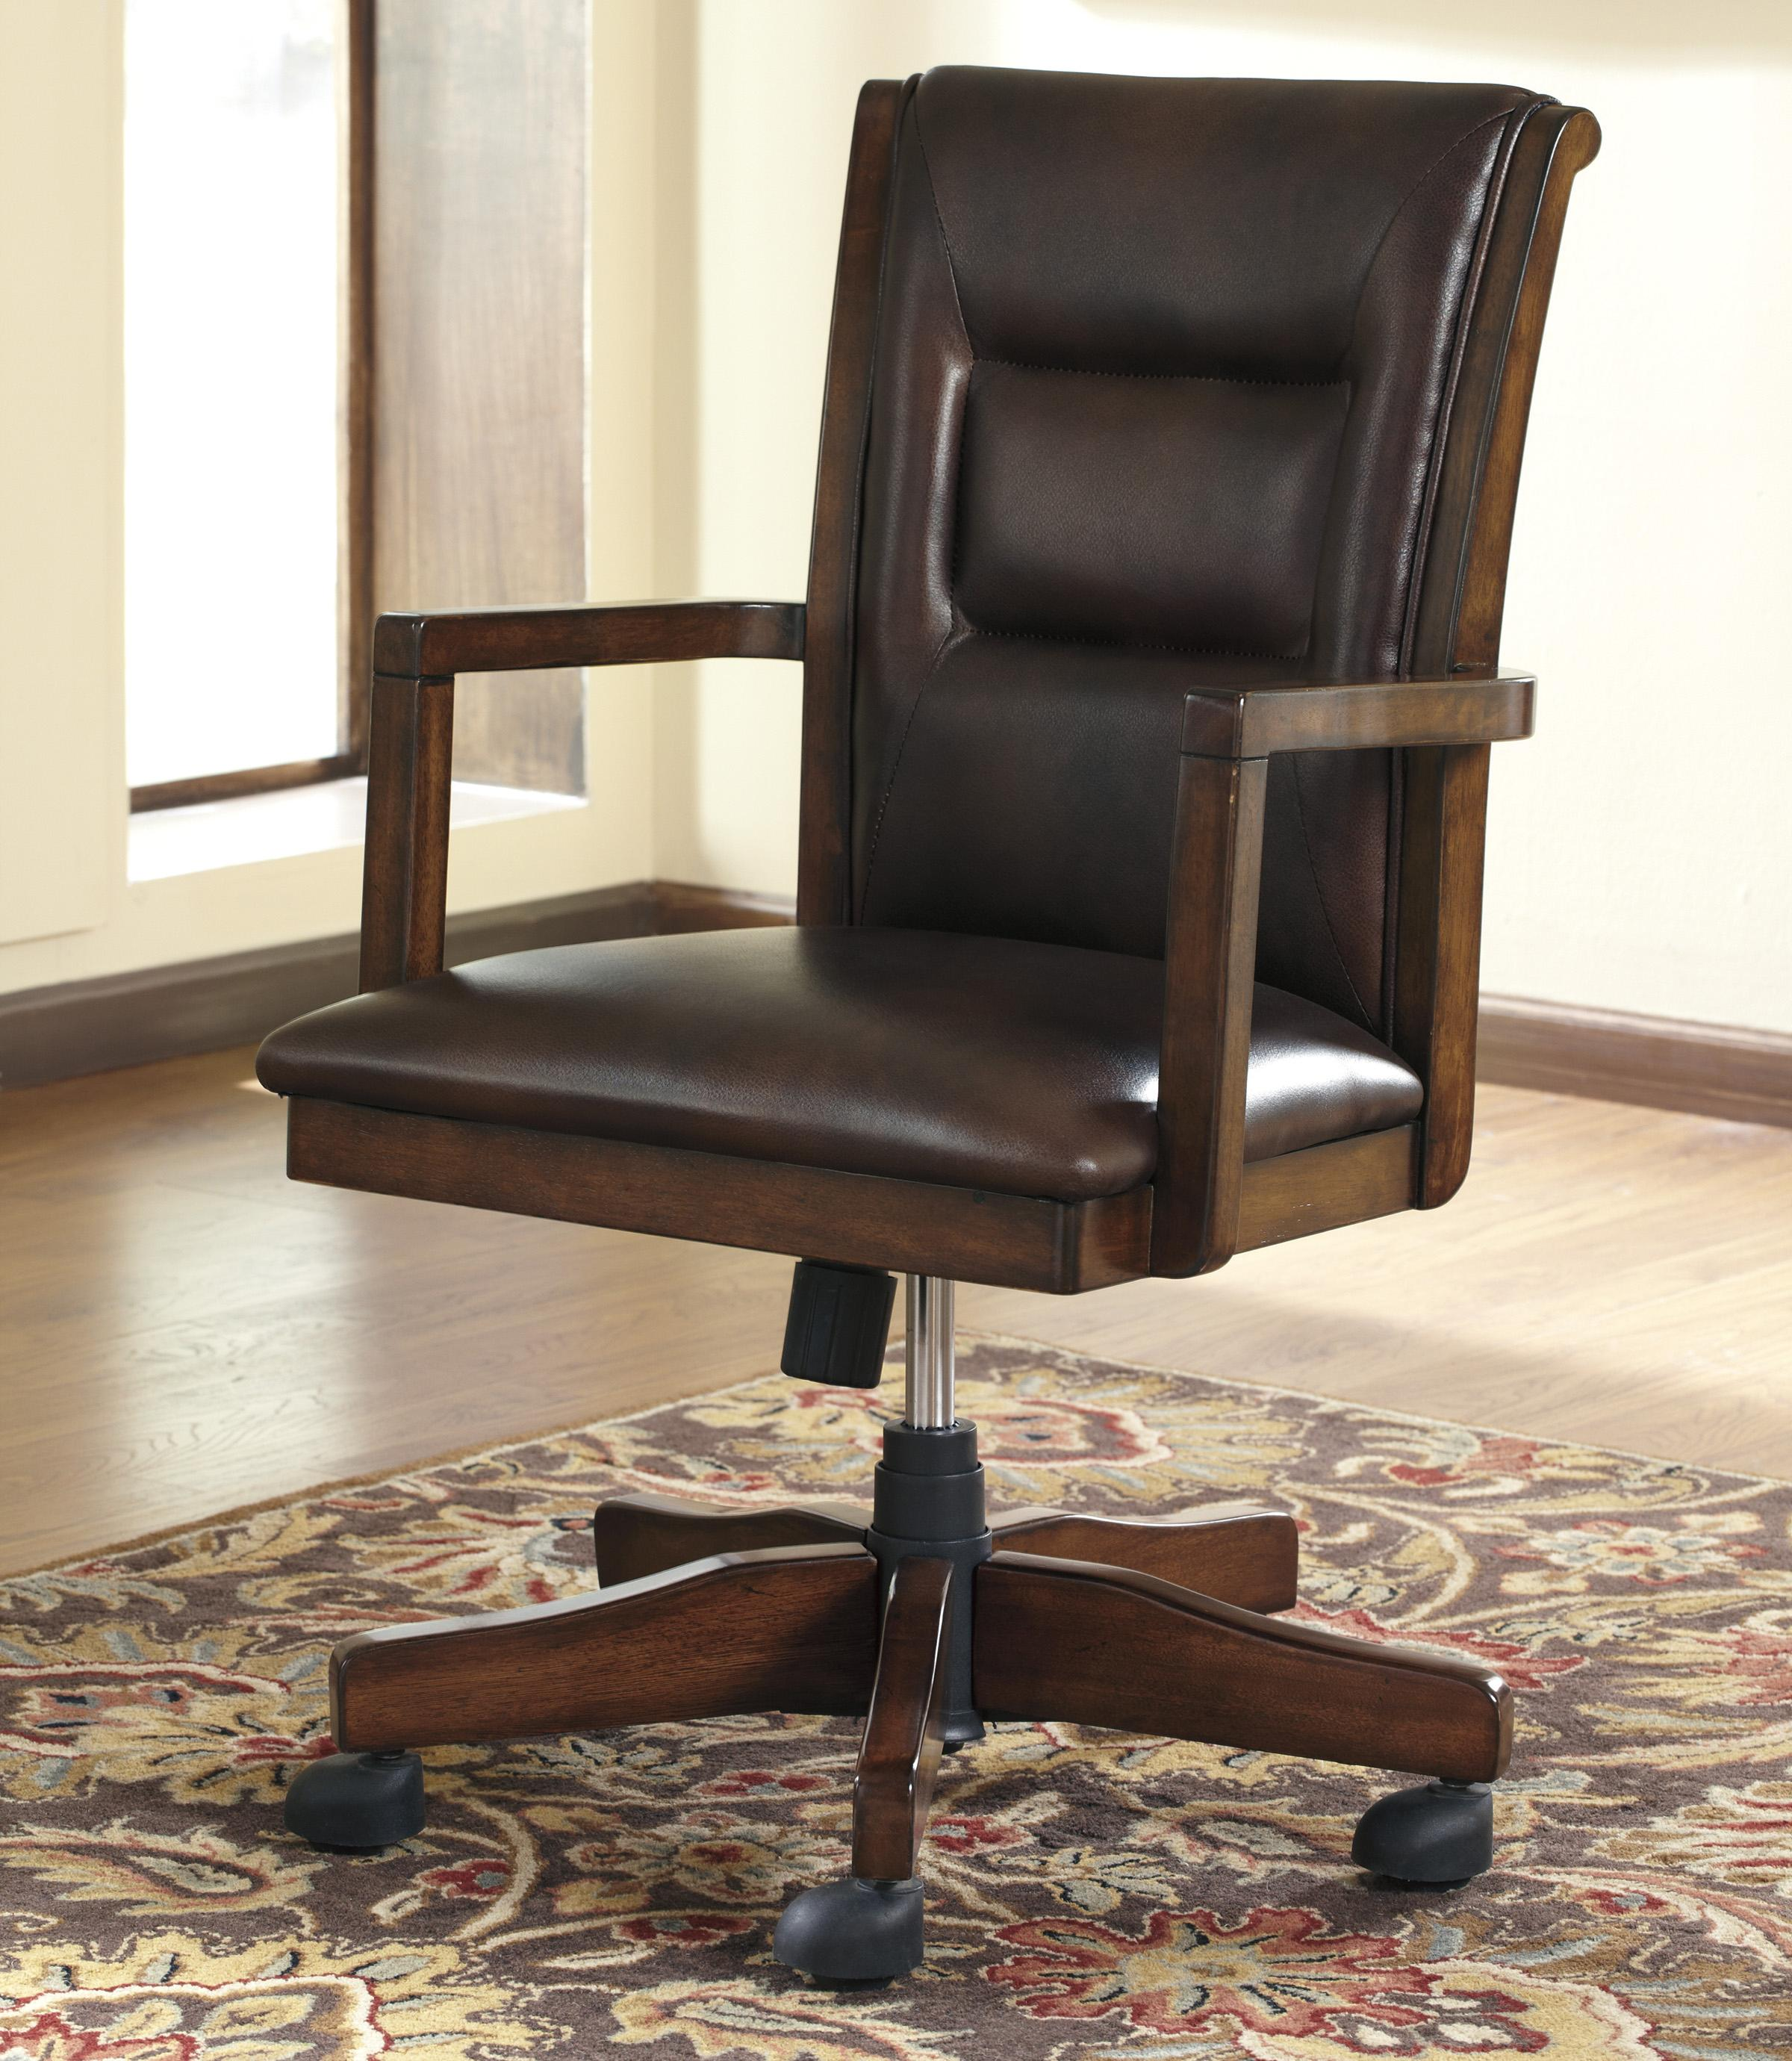 Signature Design by Ashley Devrik Home Office Desk Chair - Item Number: H619-01A